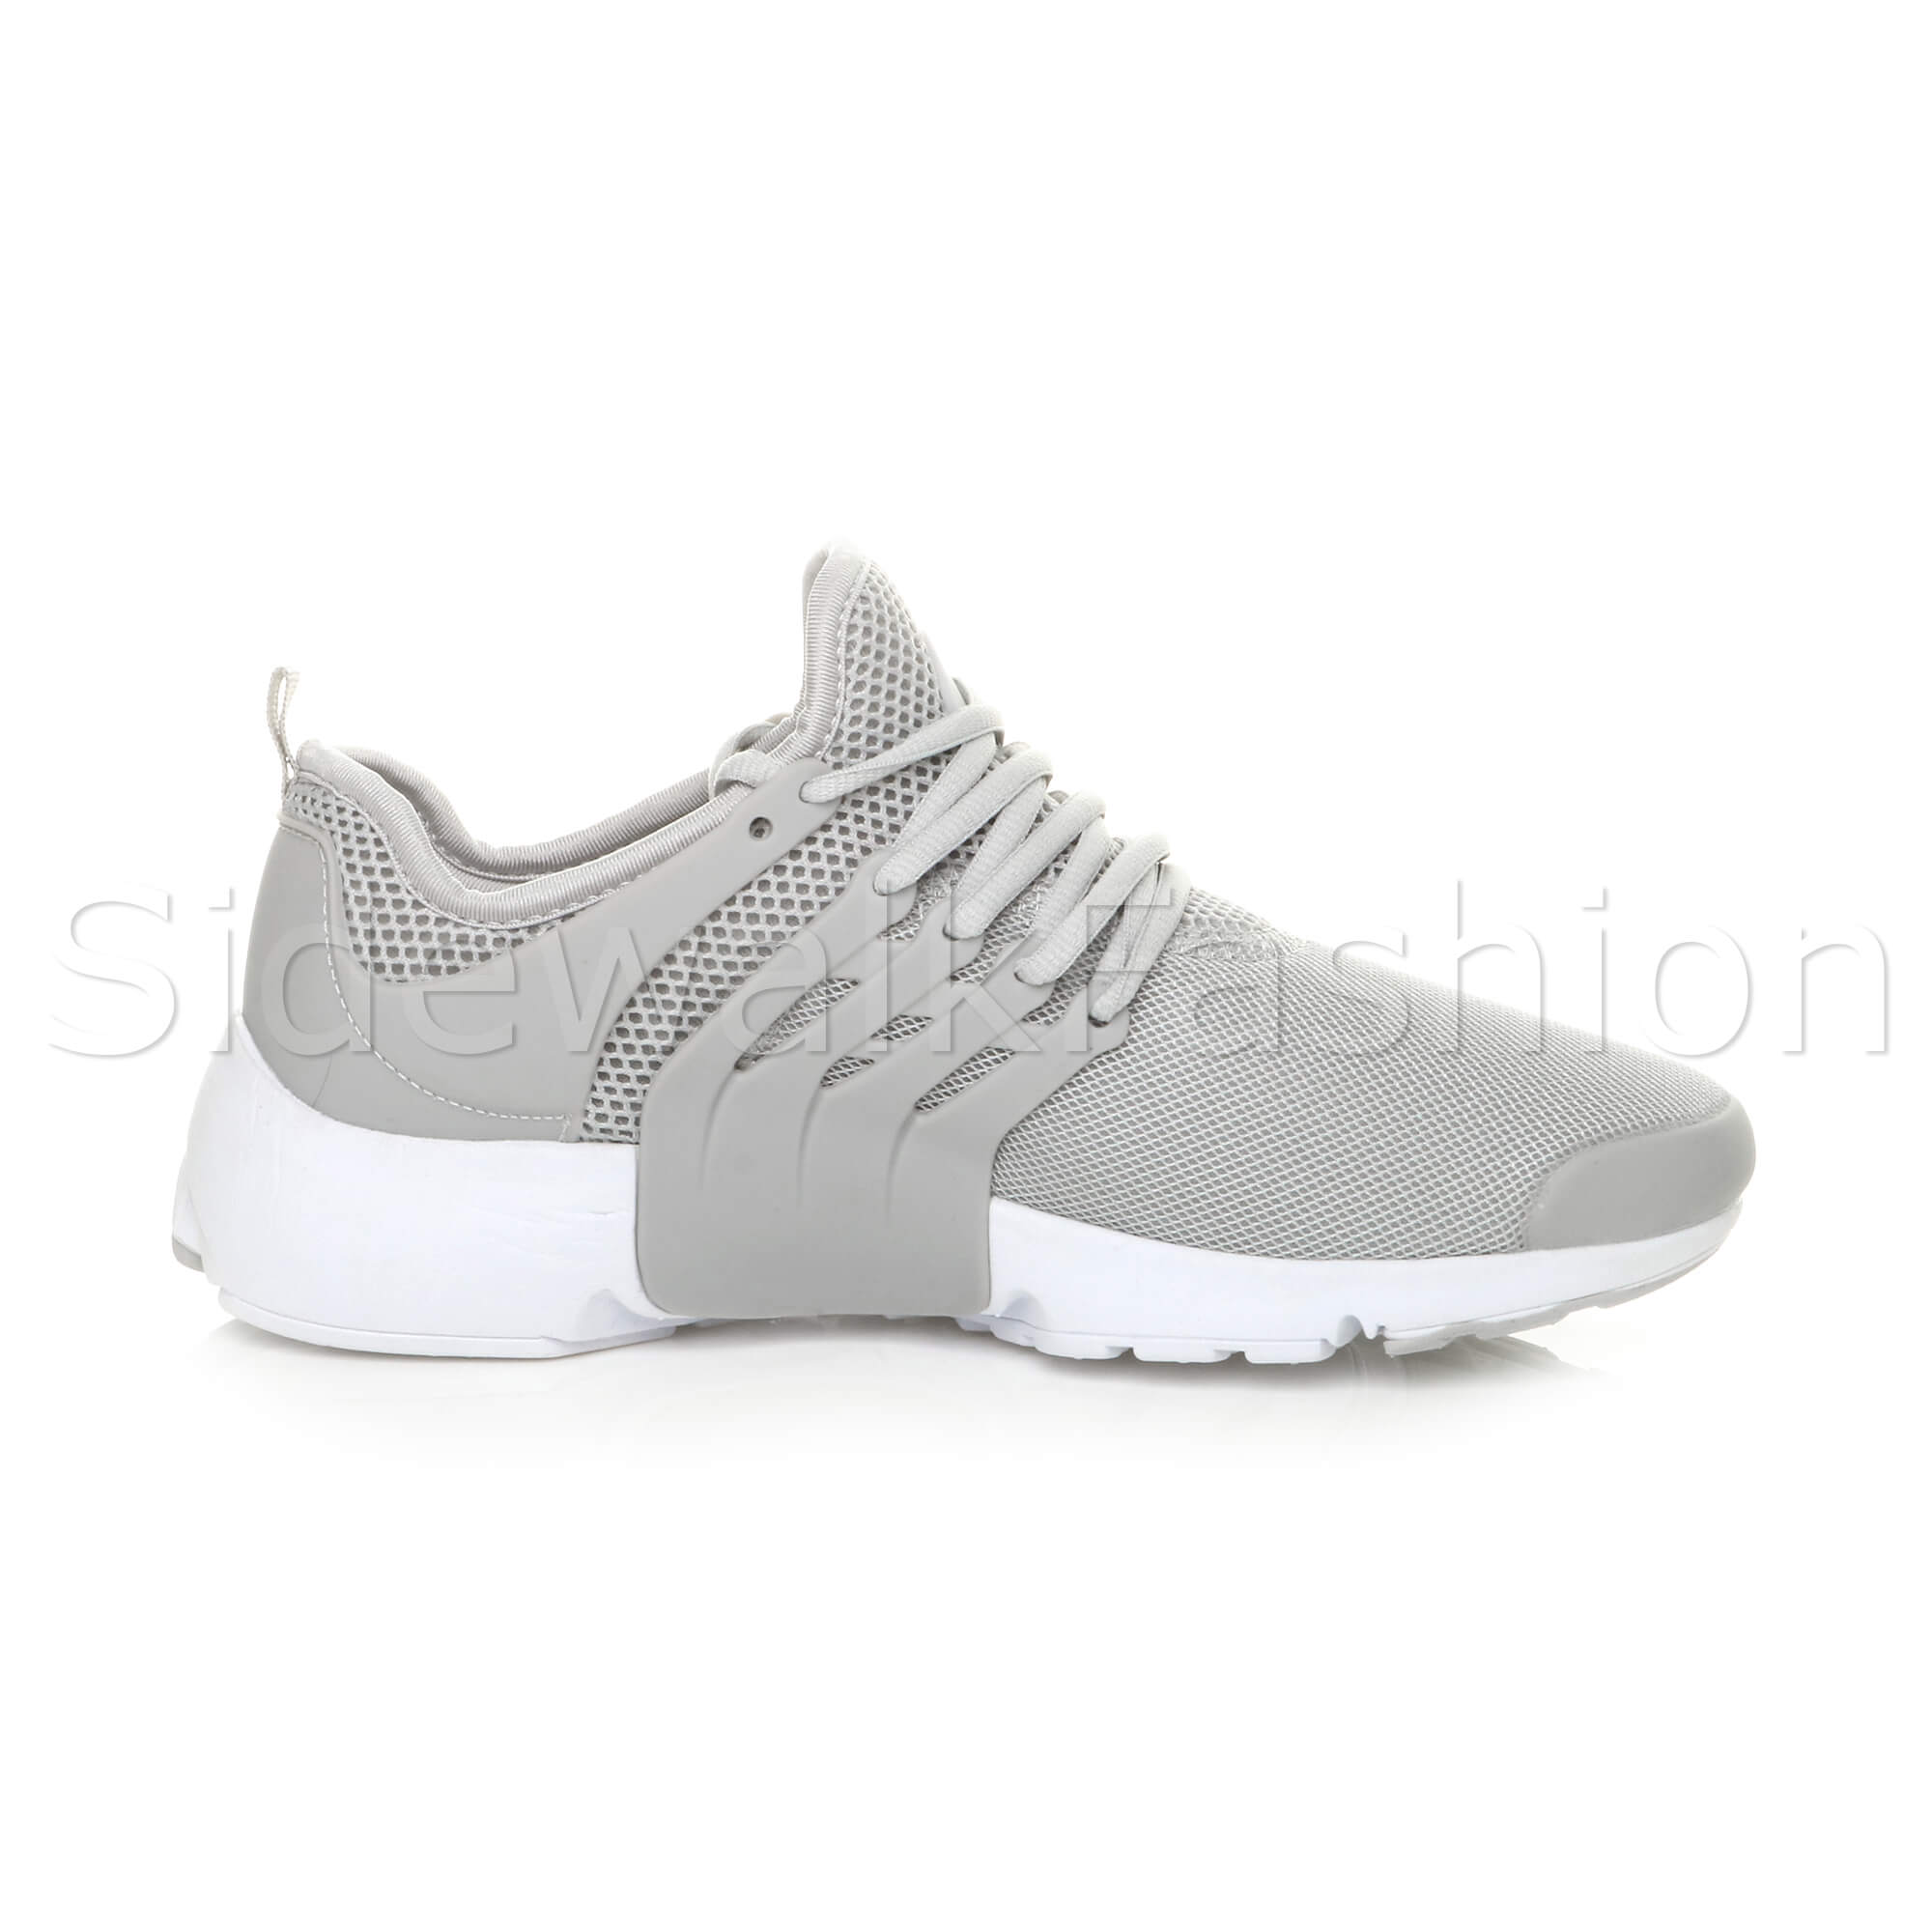 Mens-lace-up-sports-casual-low-top-gym-running-flexible-sneakers-trainers-size miniatuur 12